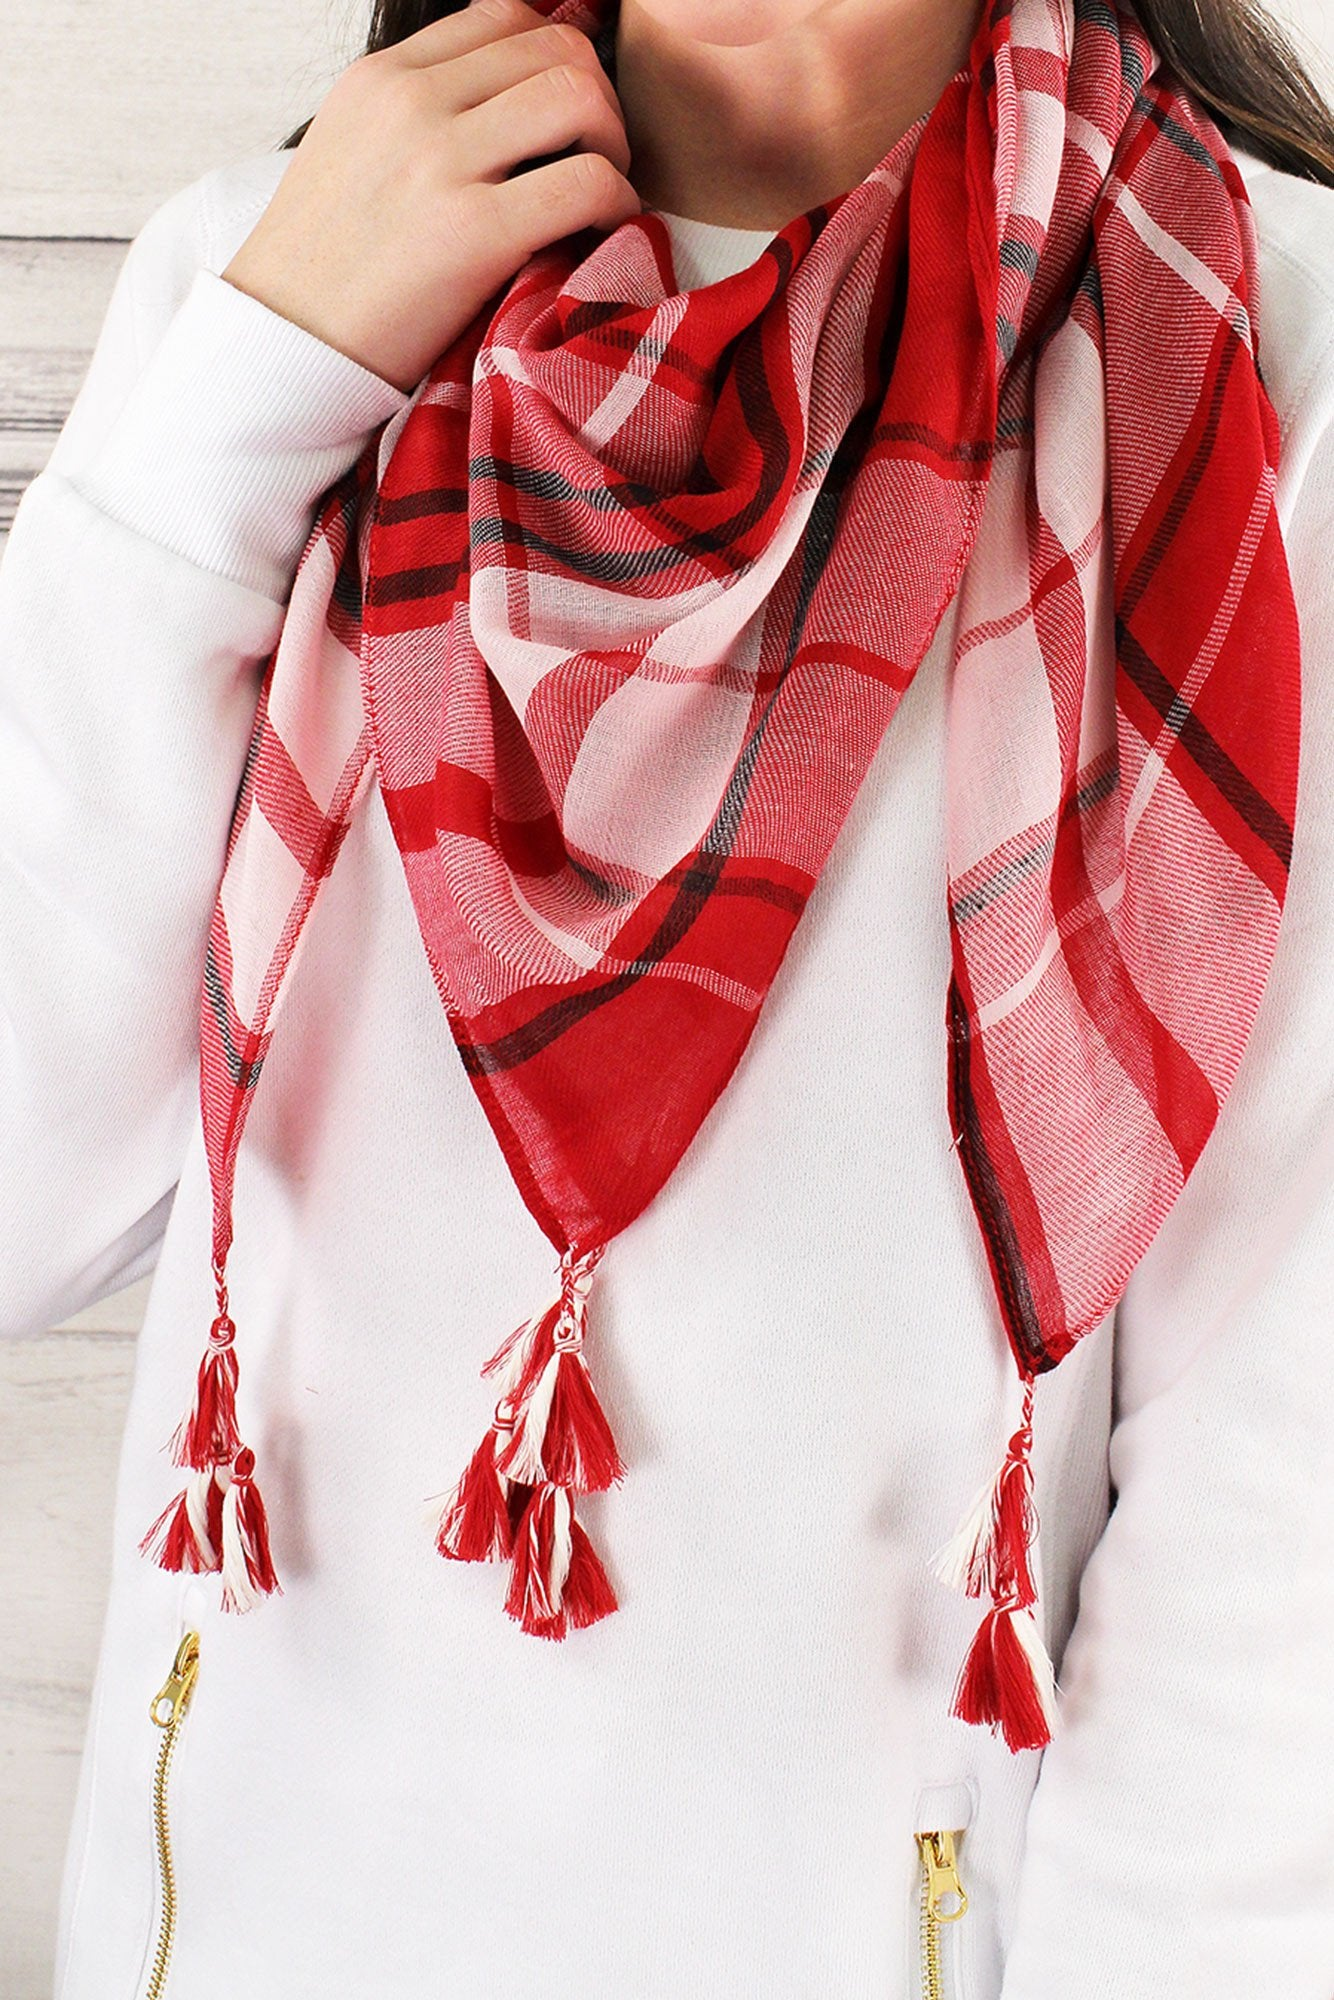 Red and White Game Day Plaid Square Scarf #EBSC5043-RDWT